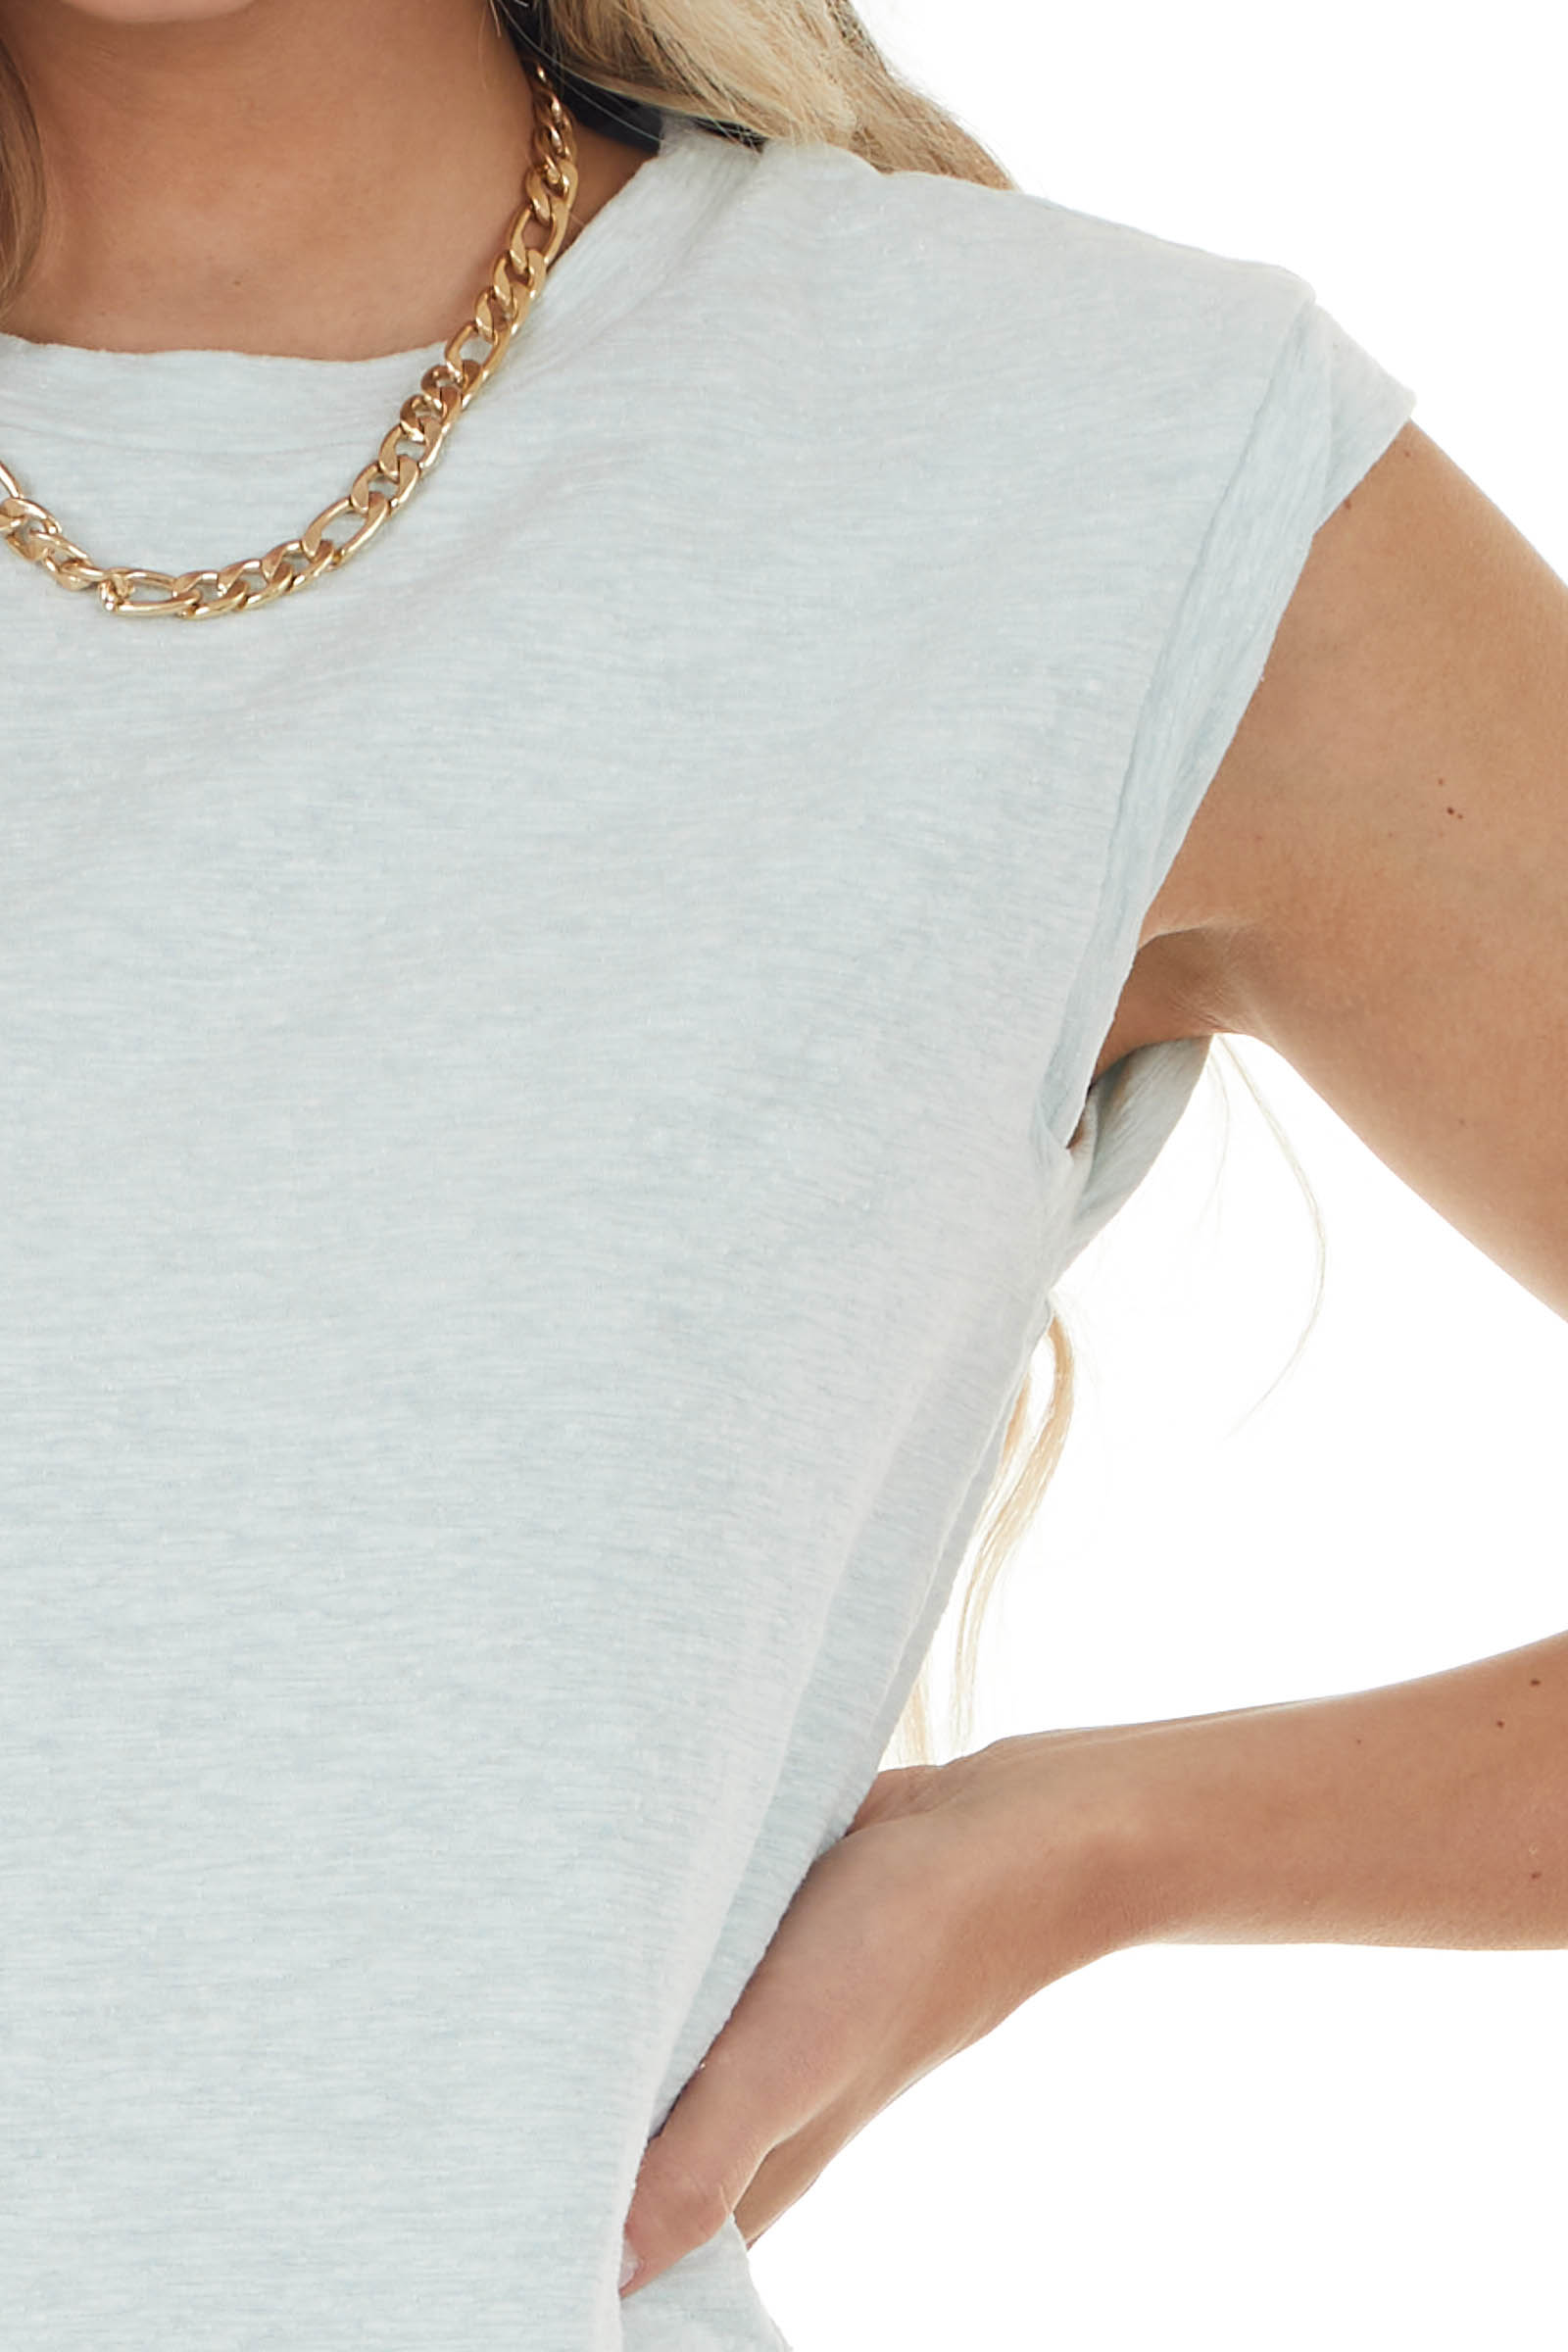 Pastel Mint Tank Top with Twisted Band Detail